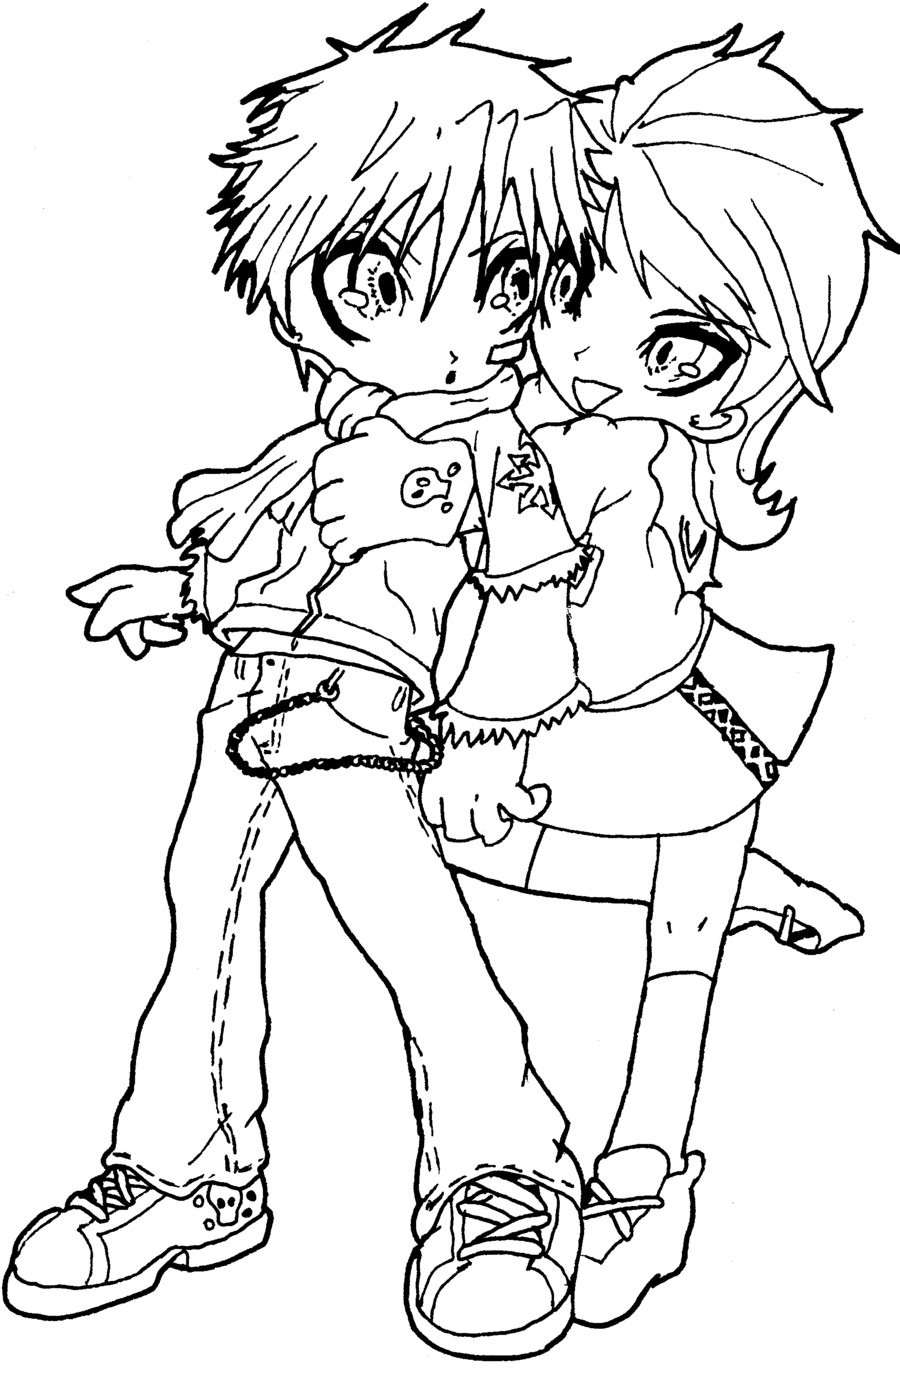 Chibi Boys Coloring Pages  Chibi Couple lineart version by Hamsterbag on DeviantArt